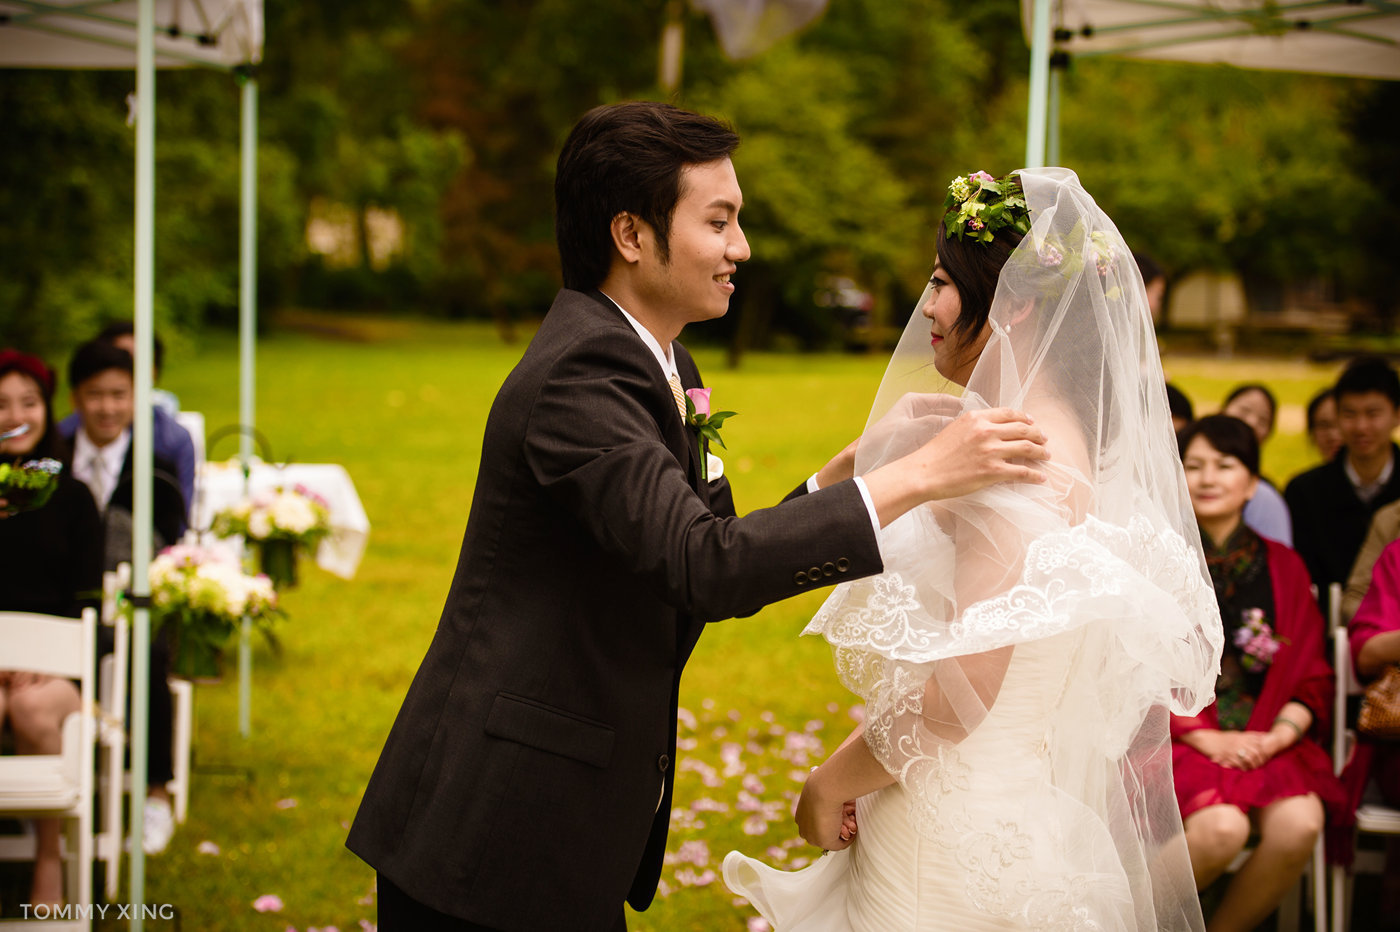 Seattle Wedding and pre wedding Los Angeles Tommy Xing Photography 西雅图洛杉矶旧金山婚礼婚纱照摄影师 093.jpg